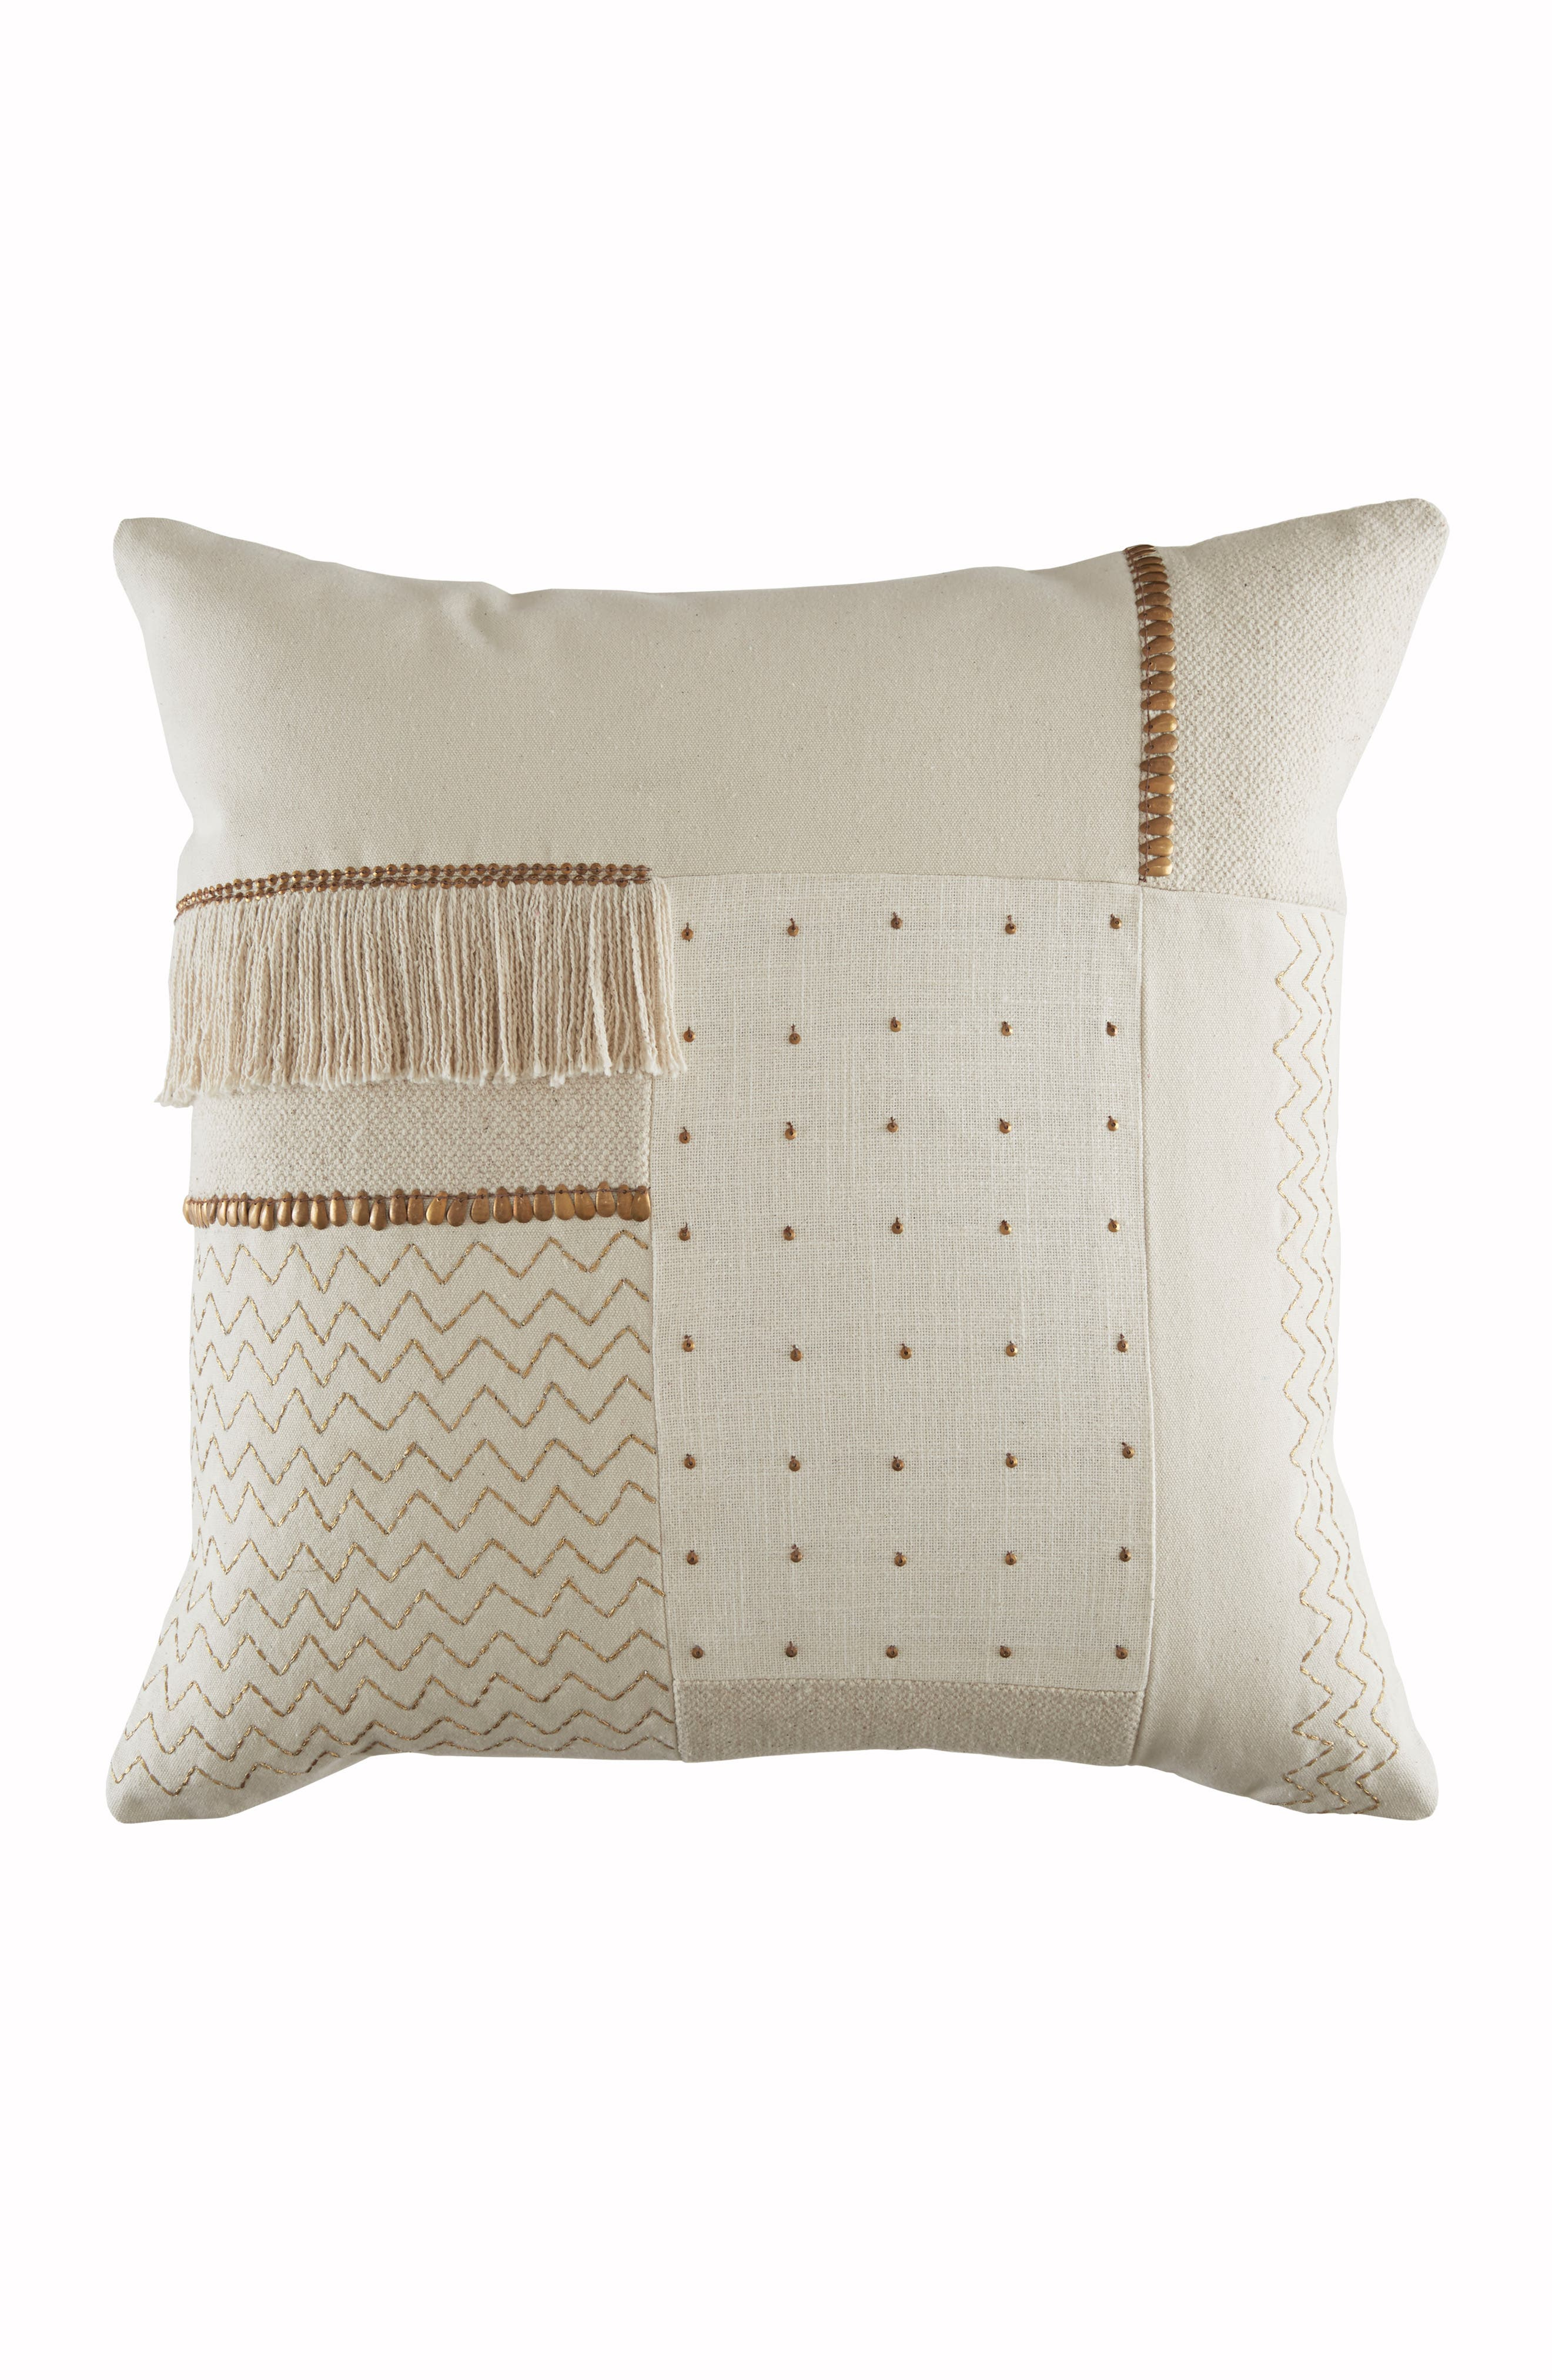 Zadie Accent Pillow,                         Main,                         color, 900